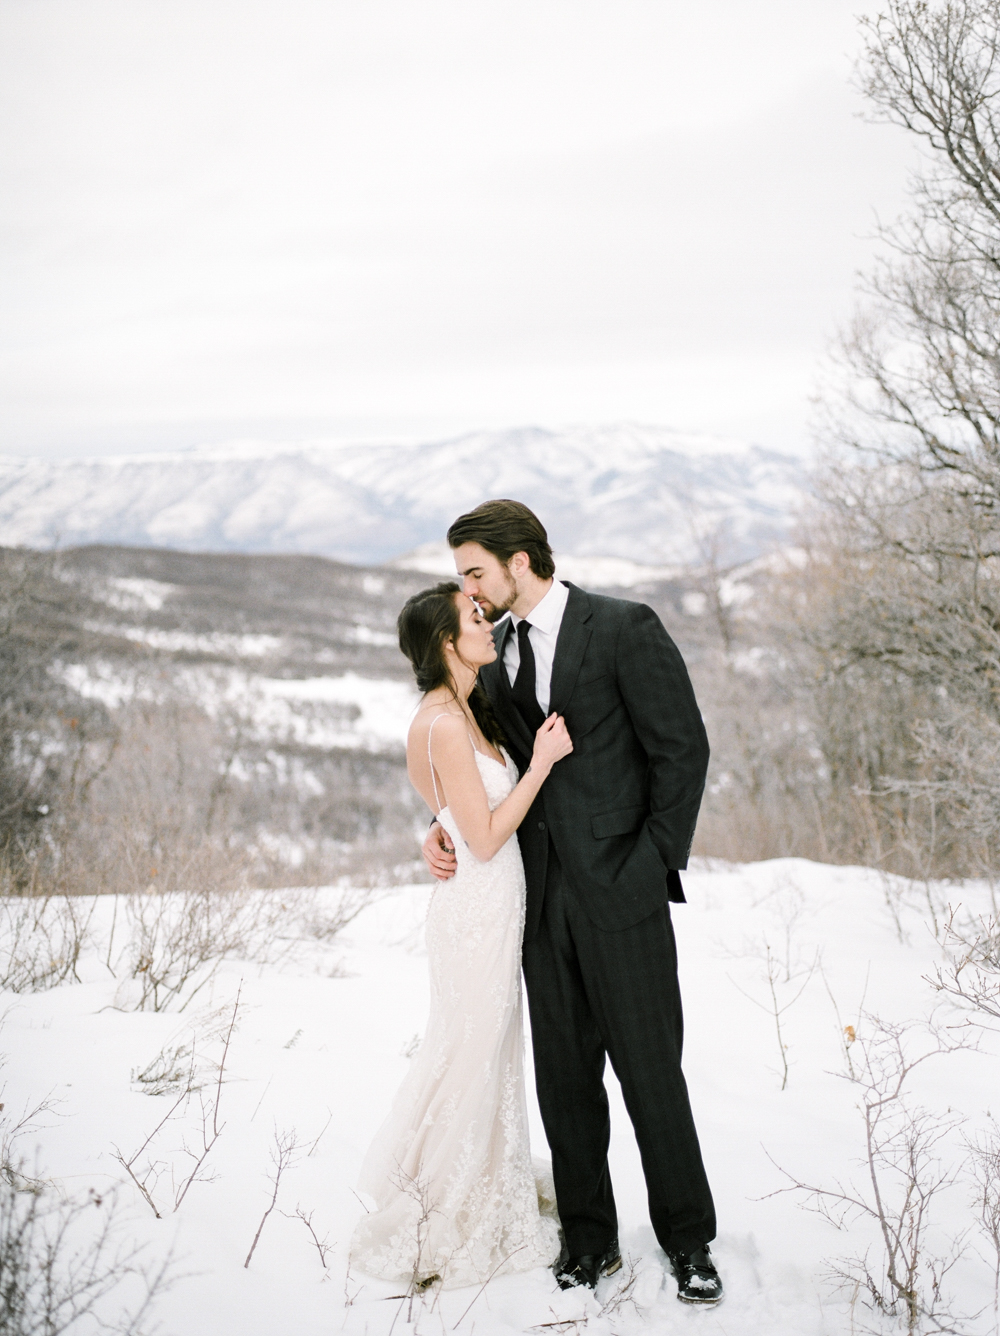 Christine-Gosch-Utah-film-photographer-wedding-mountains-snow-snowy-destination-7.jpg